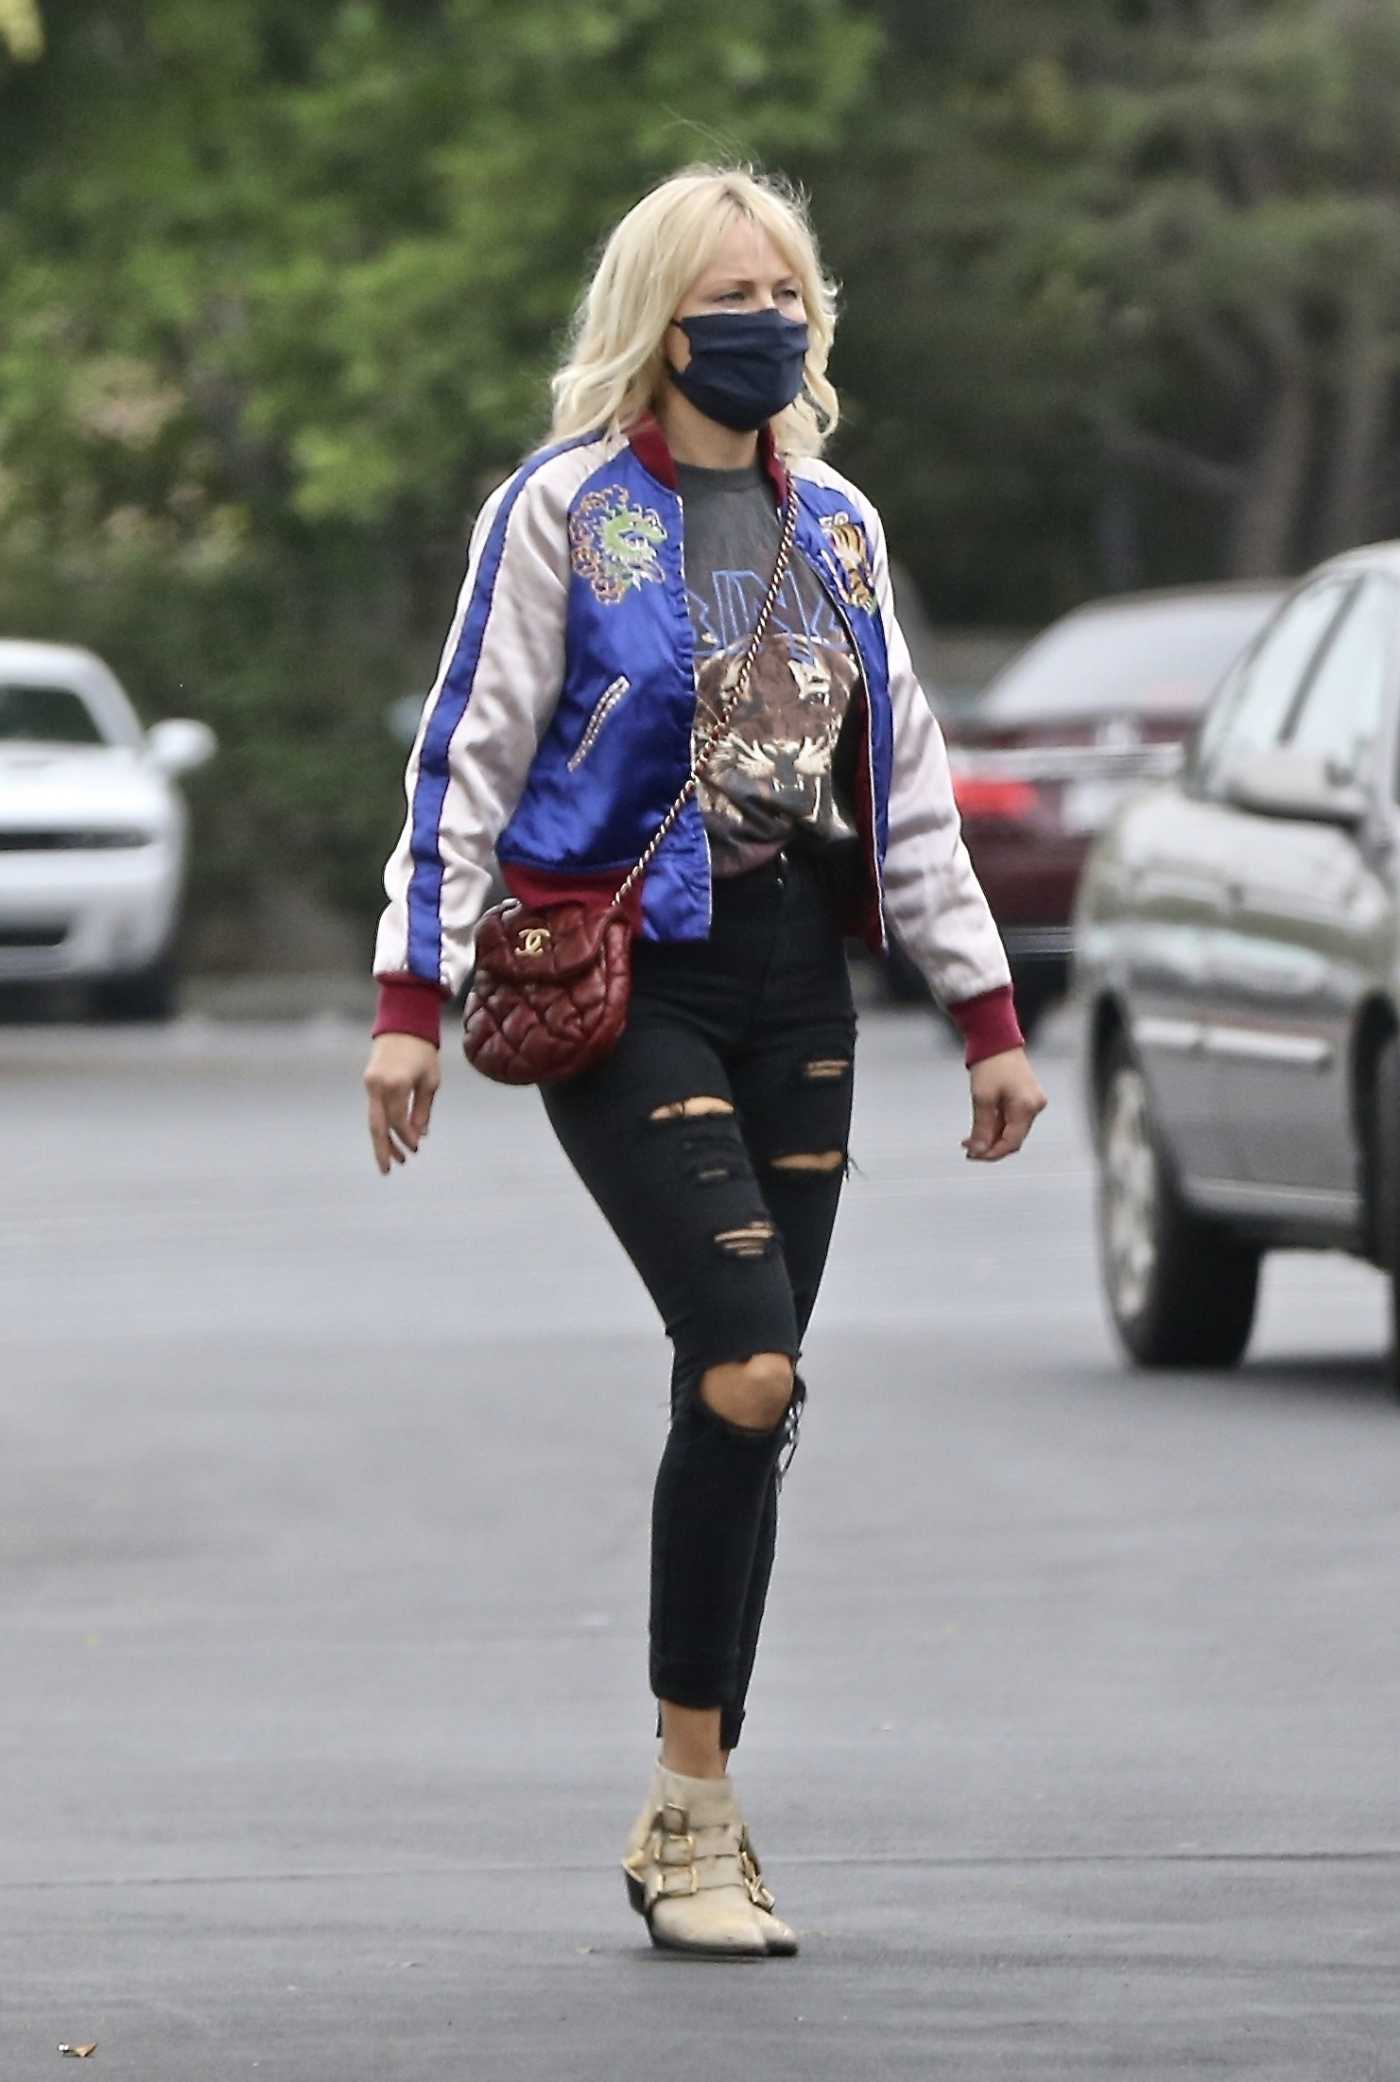 Malin Akerman in a Black Protective Mask Stocks Up at Costco in Los Angeles 10/22/2020